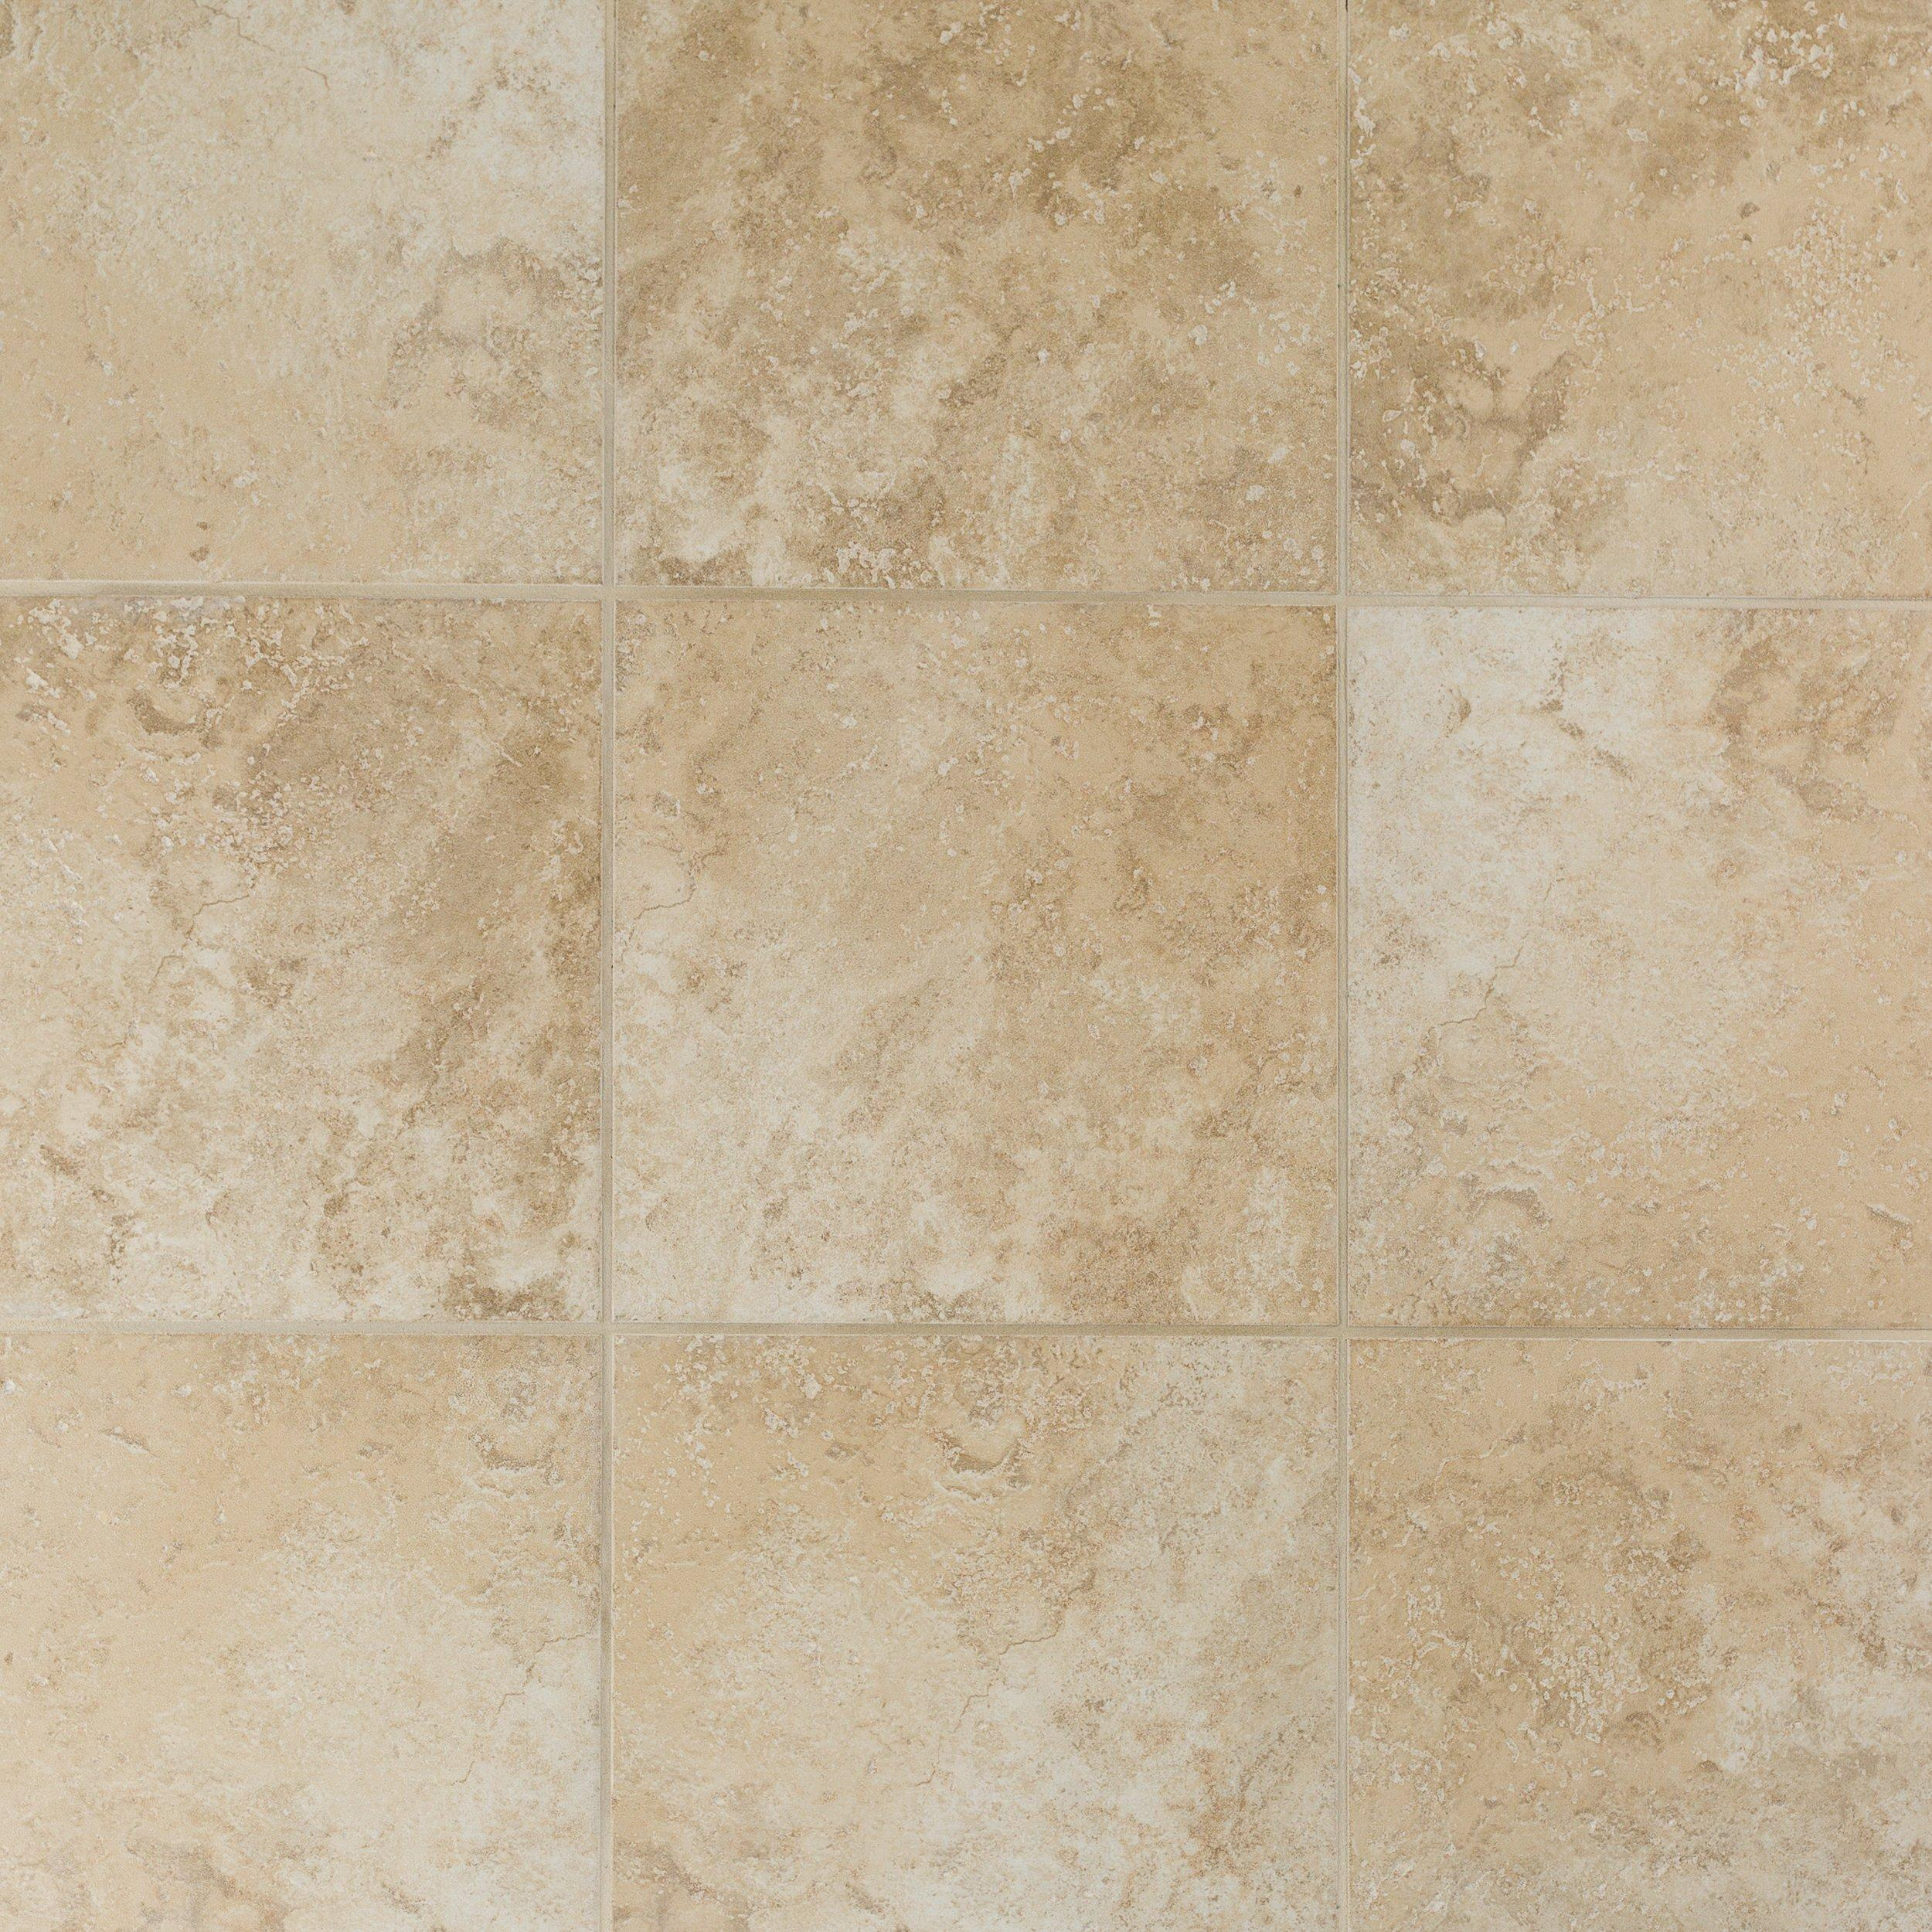 Mediterranean Ivory Rustic Porcelain Tile   13 X 13   100053511 | Floor And  Decor